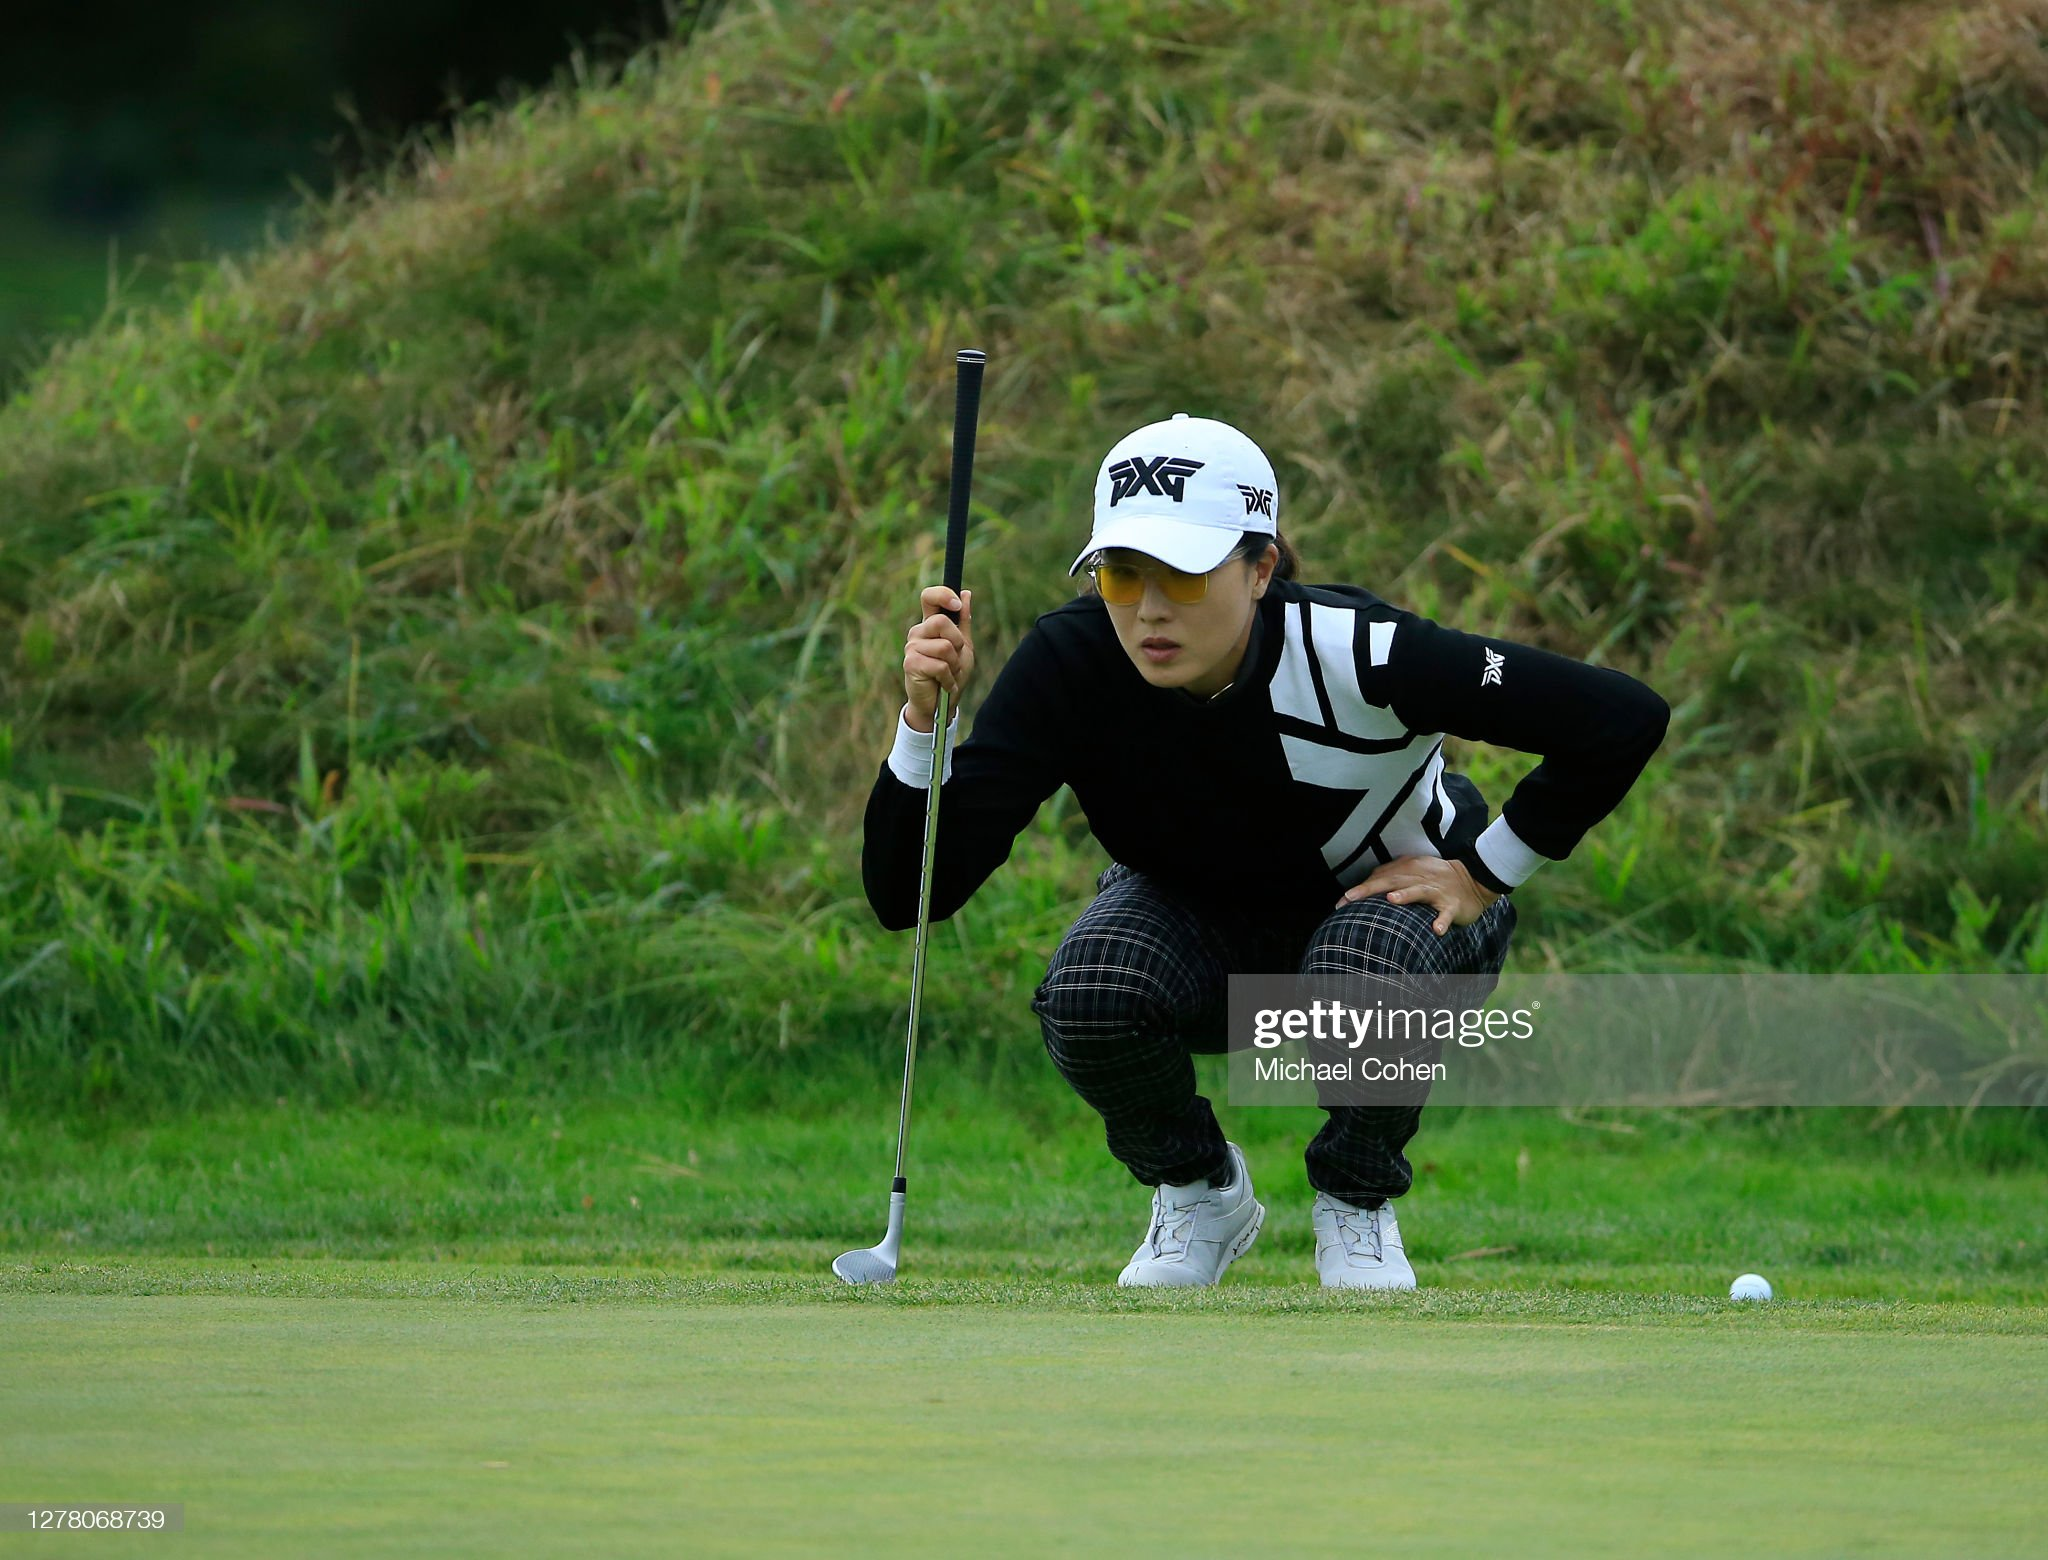 https://media.gettyimages.com/photos/jennifer-song-lines-up-a-shot-at-the-18th-hole-during-the-second-of-picture-id1278068739?s=2048x2048